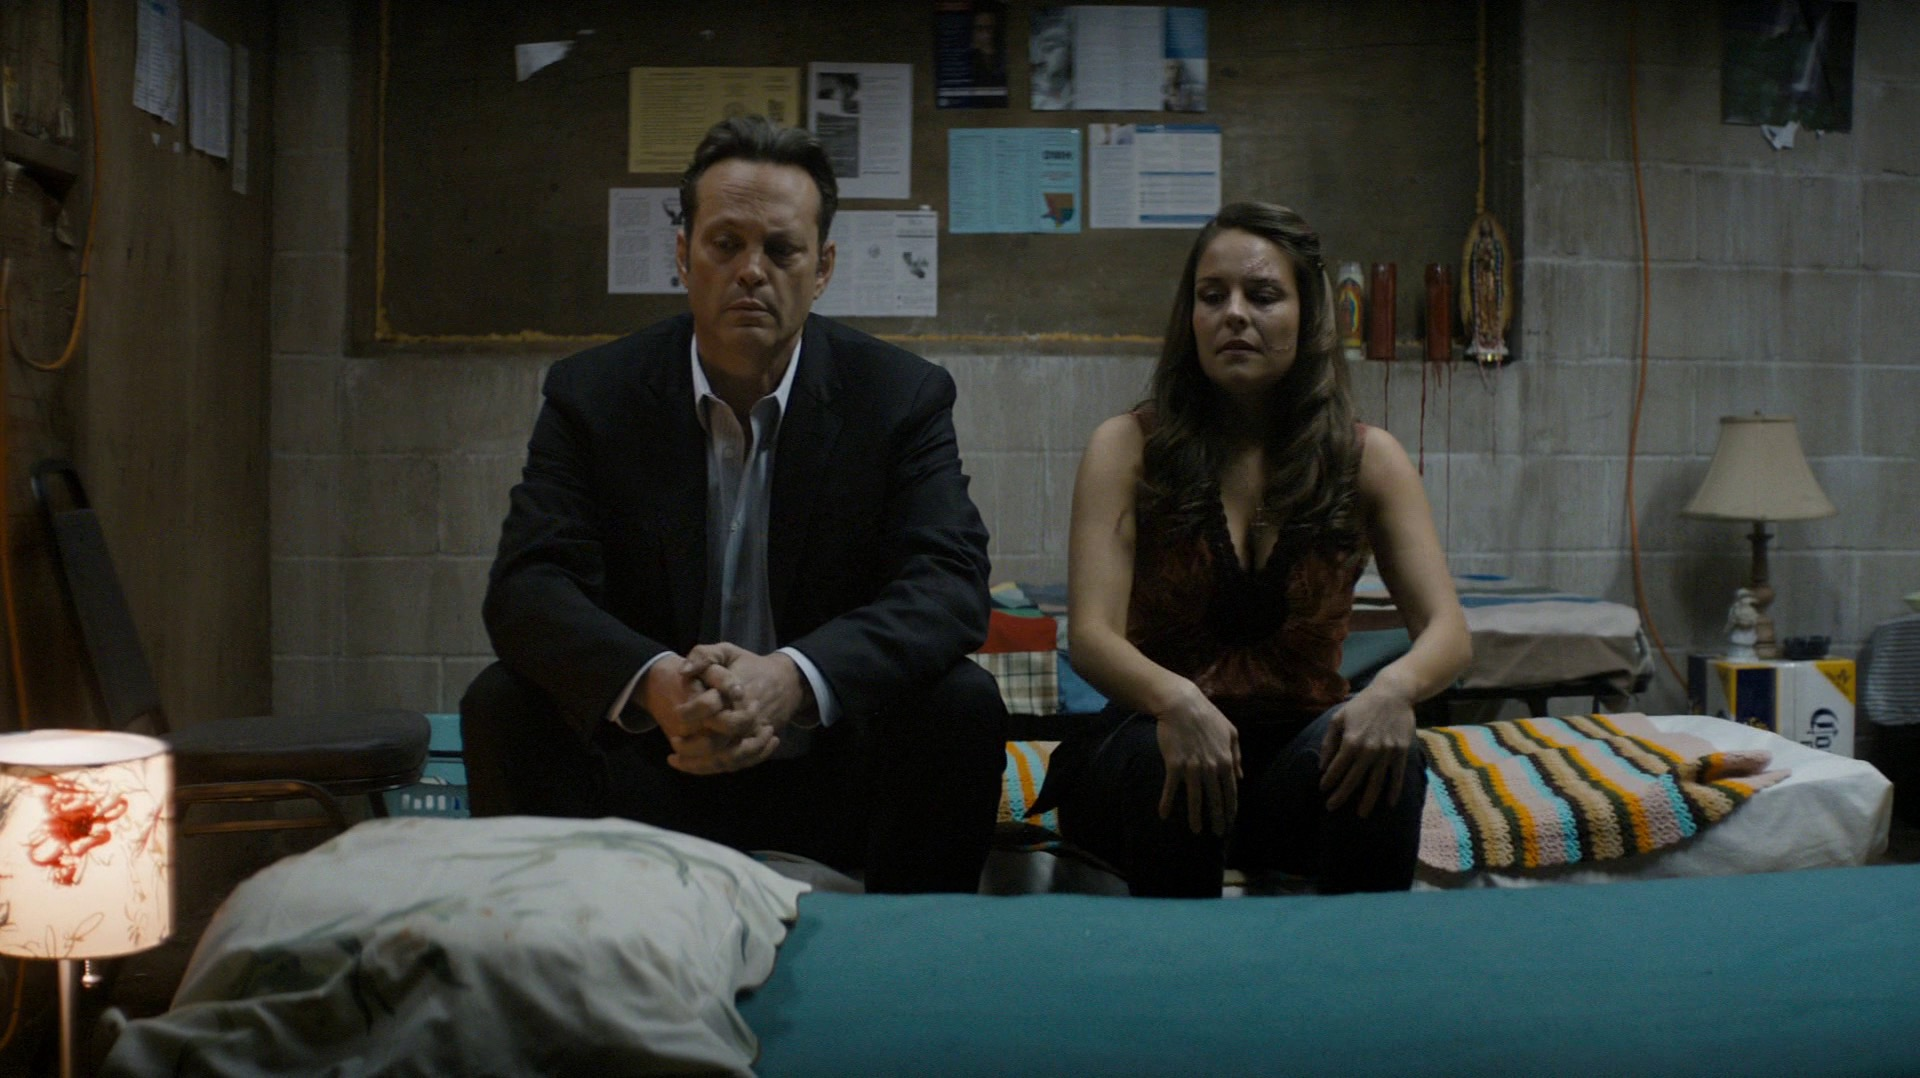 Felicia and Frank sit on a bed